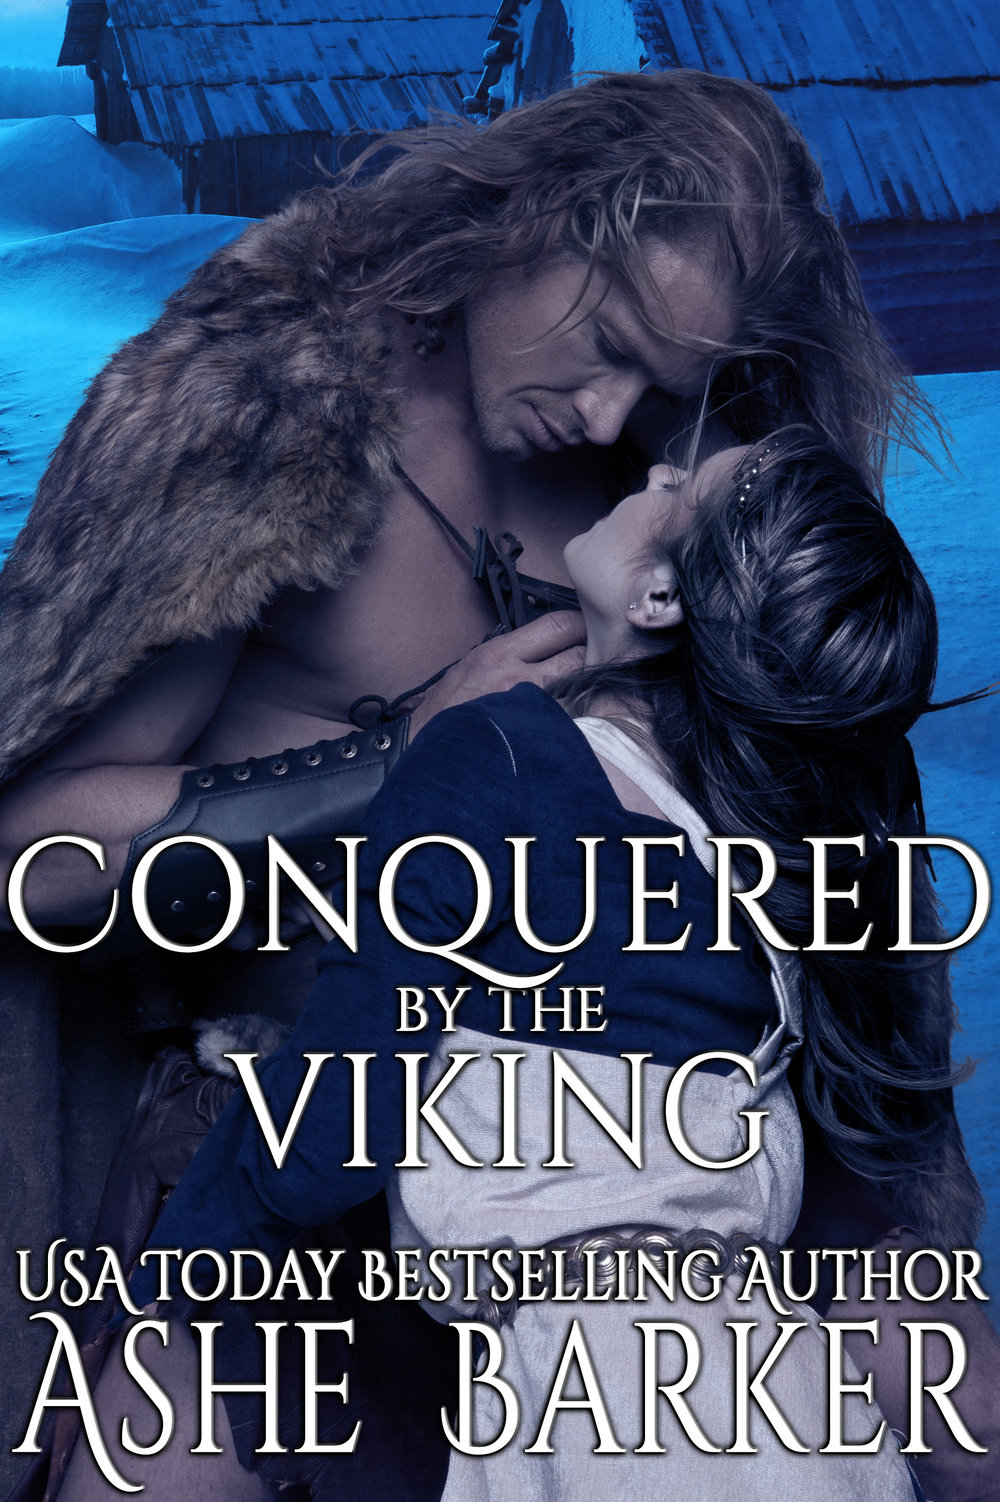 conquered by the viking-AB cover_full (1).jpg